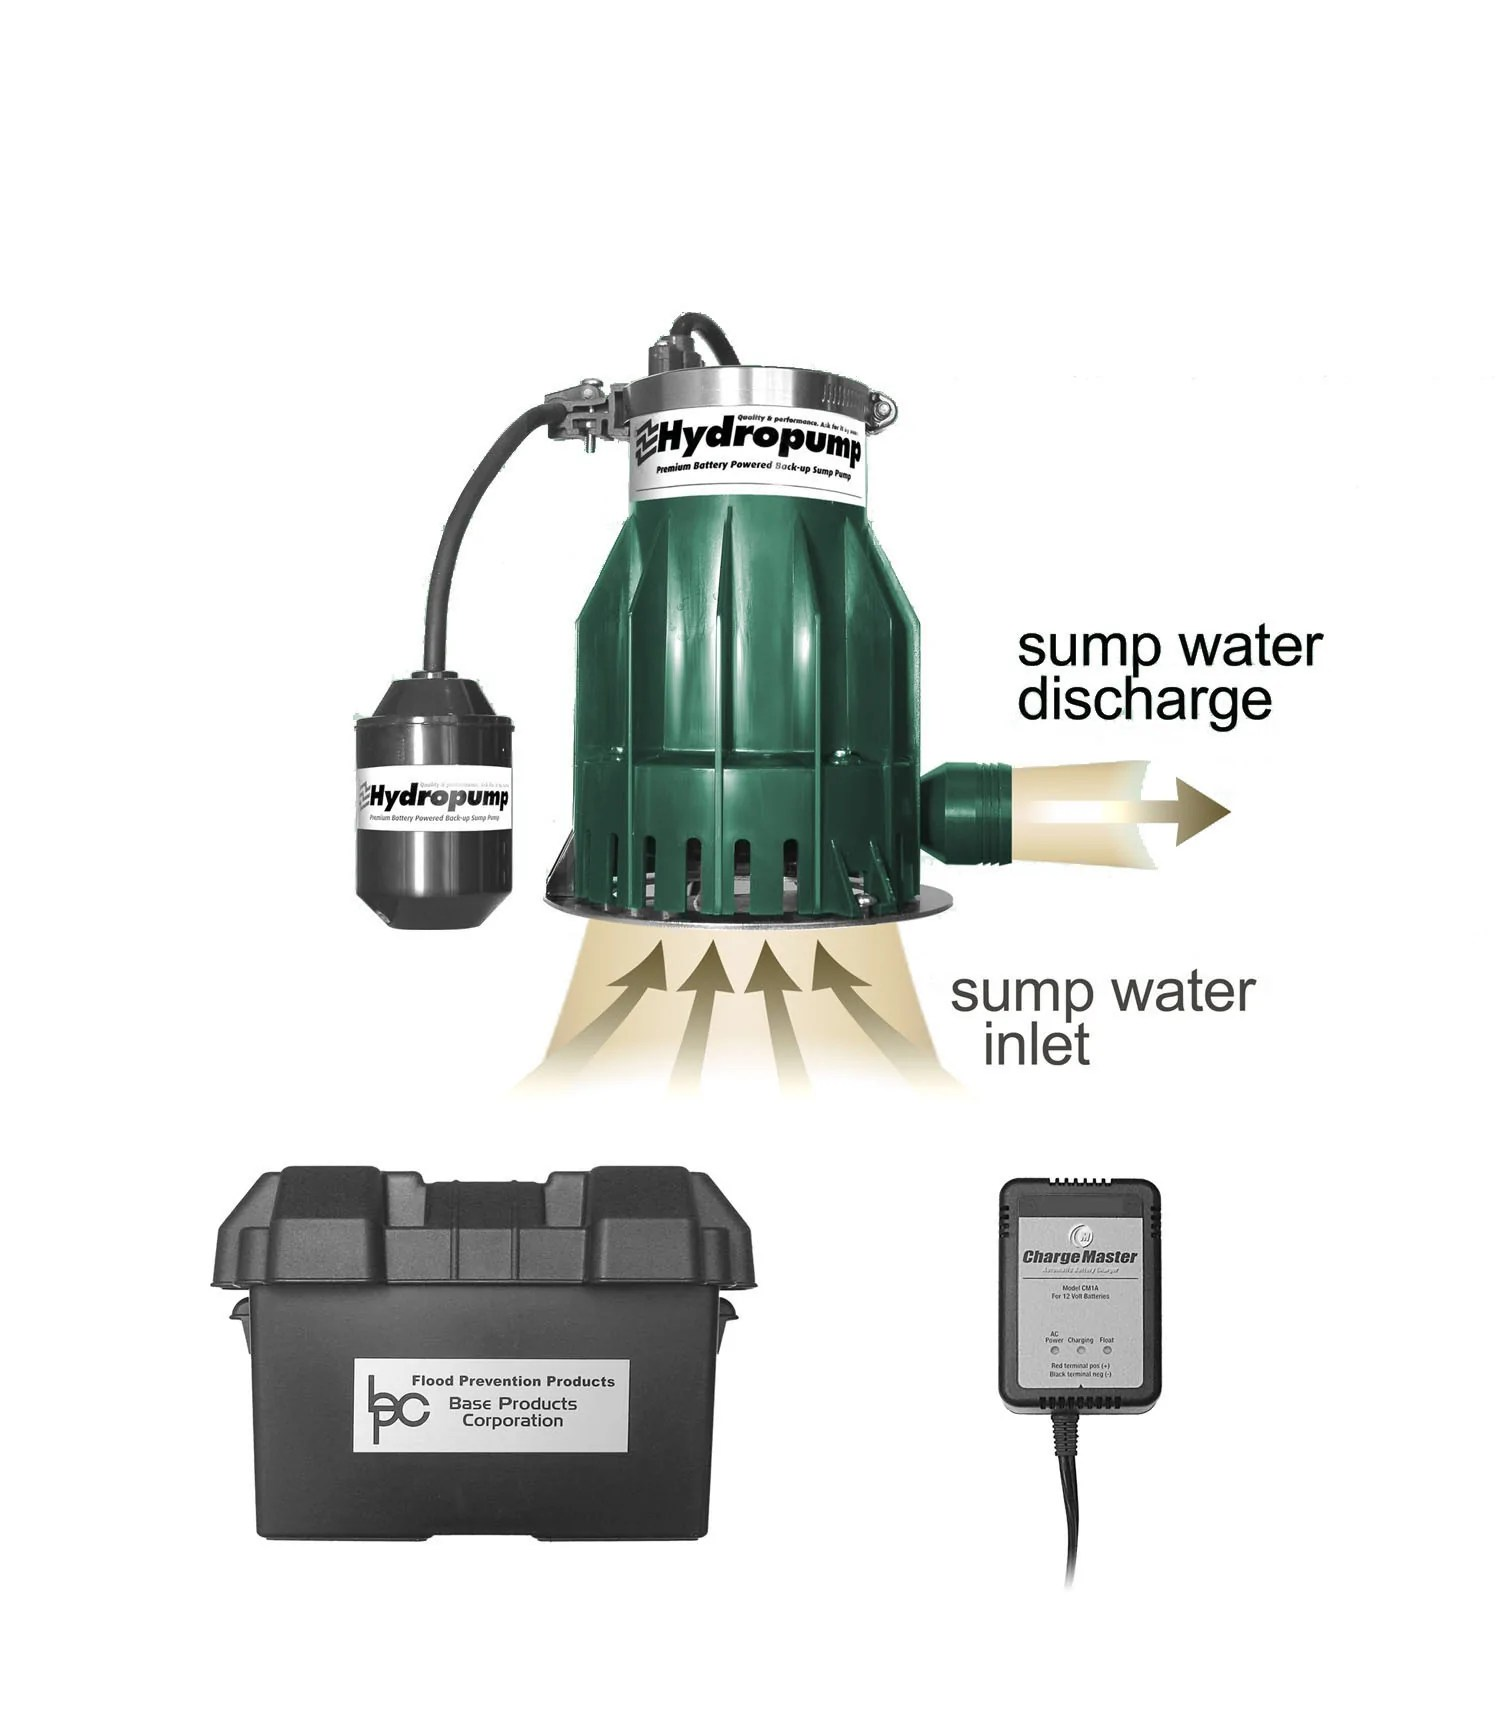 product image hydropump dh1800 sump pump with battery backup sump pump with battery backup sump pump with battery backup [ 1500 x 1731 Pixel ]